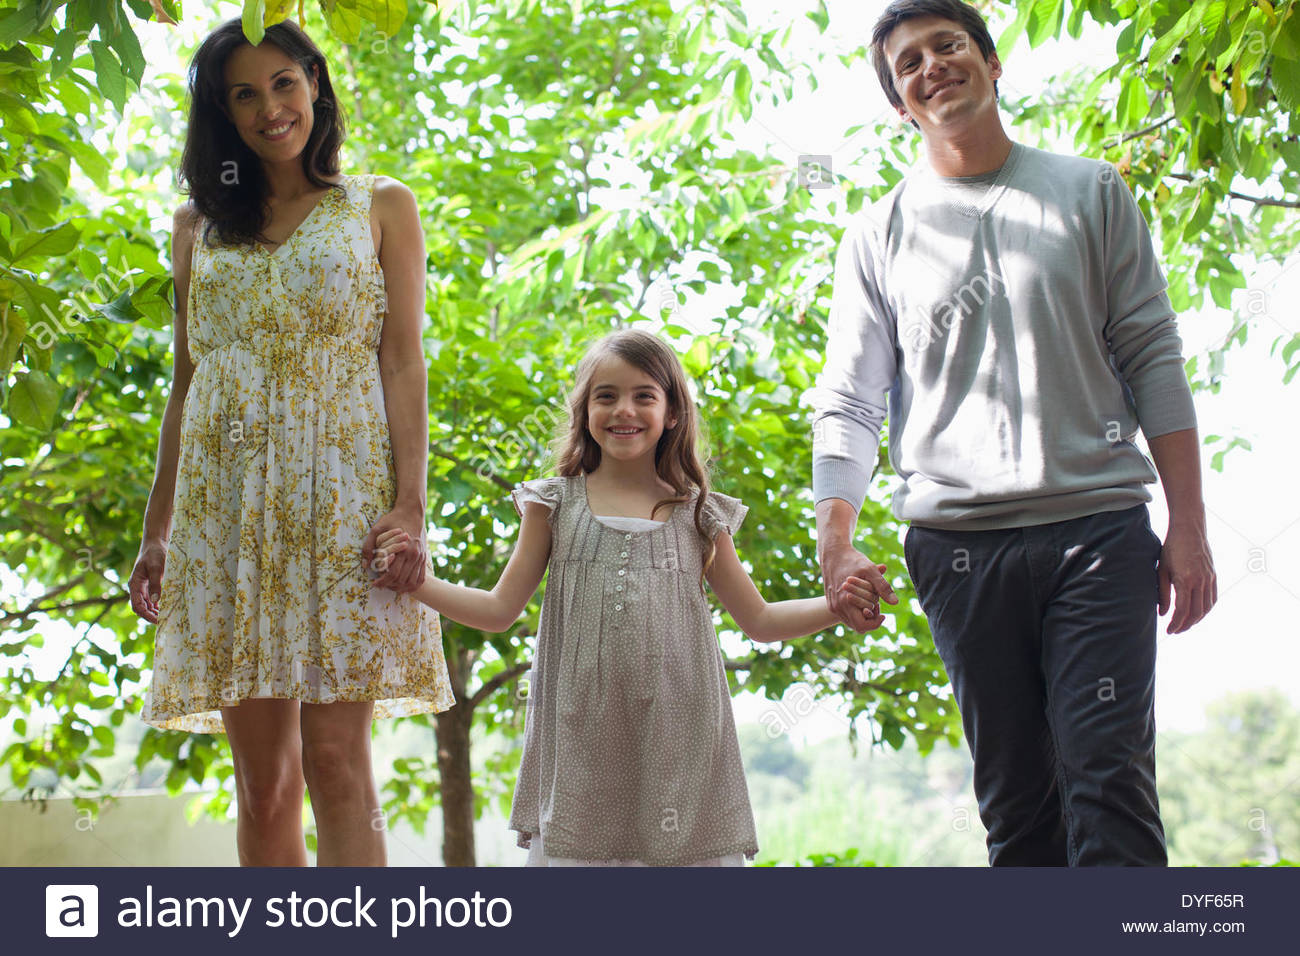 Family holding hands together outdoors - Stock Image